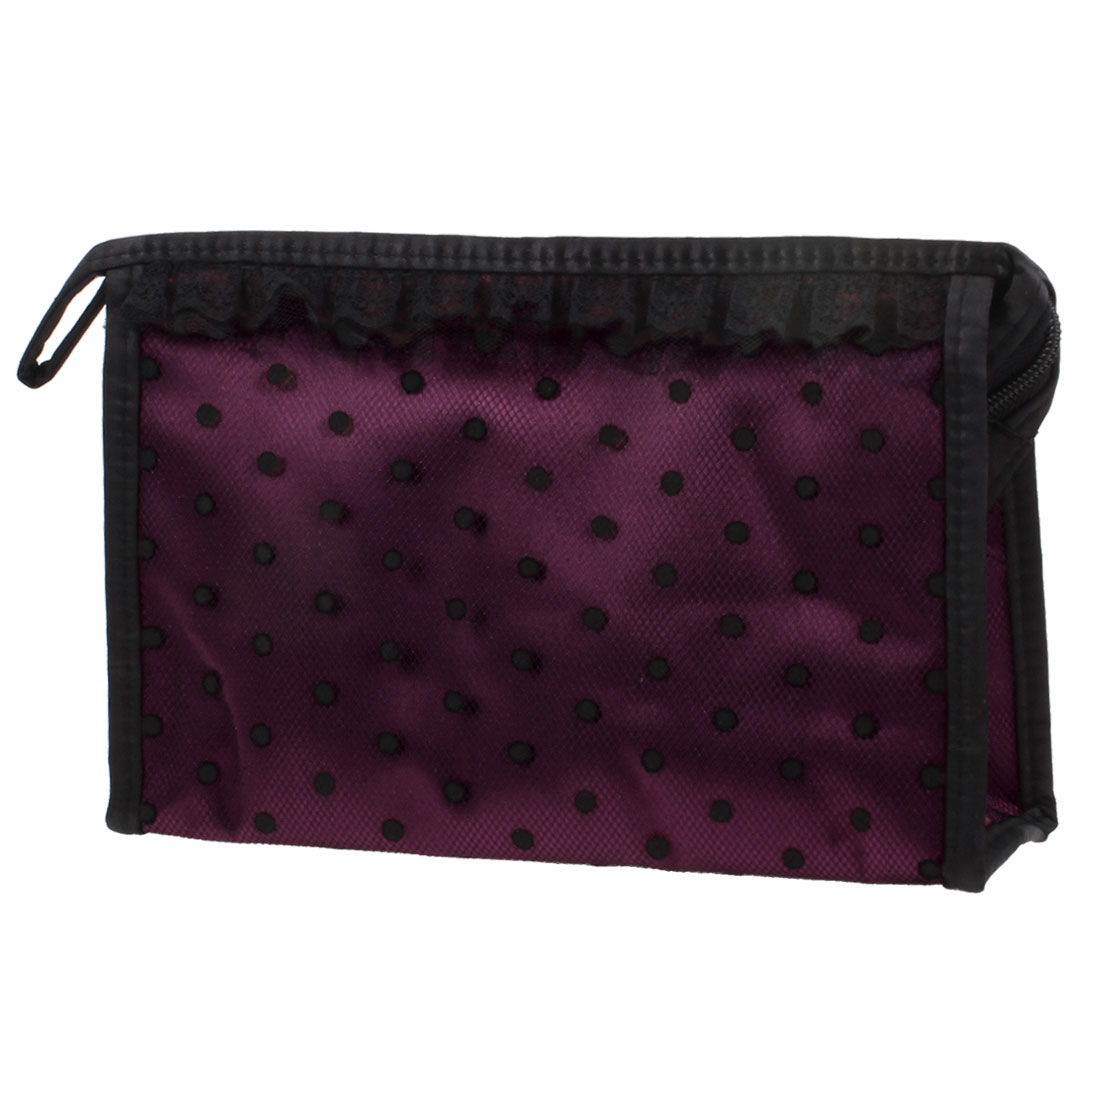 Zip up Closure Black Dotted Mesh Lace Makeup Cosmetic Holder Hand Bag Burgundy